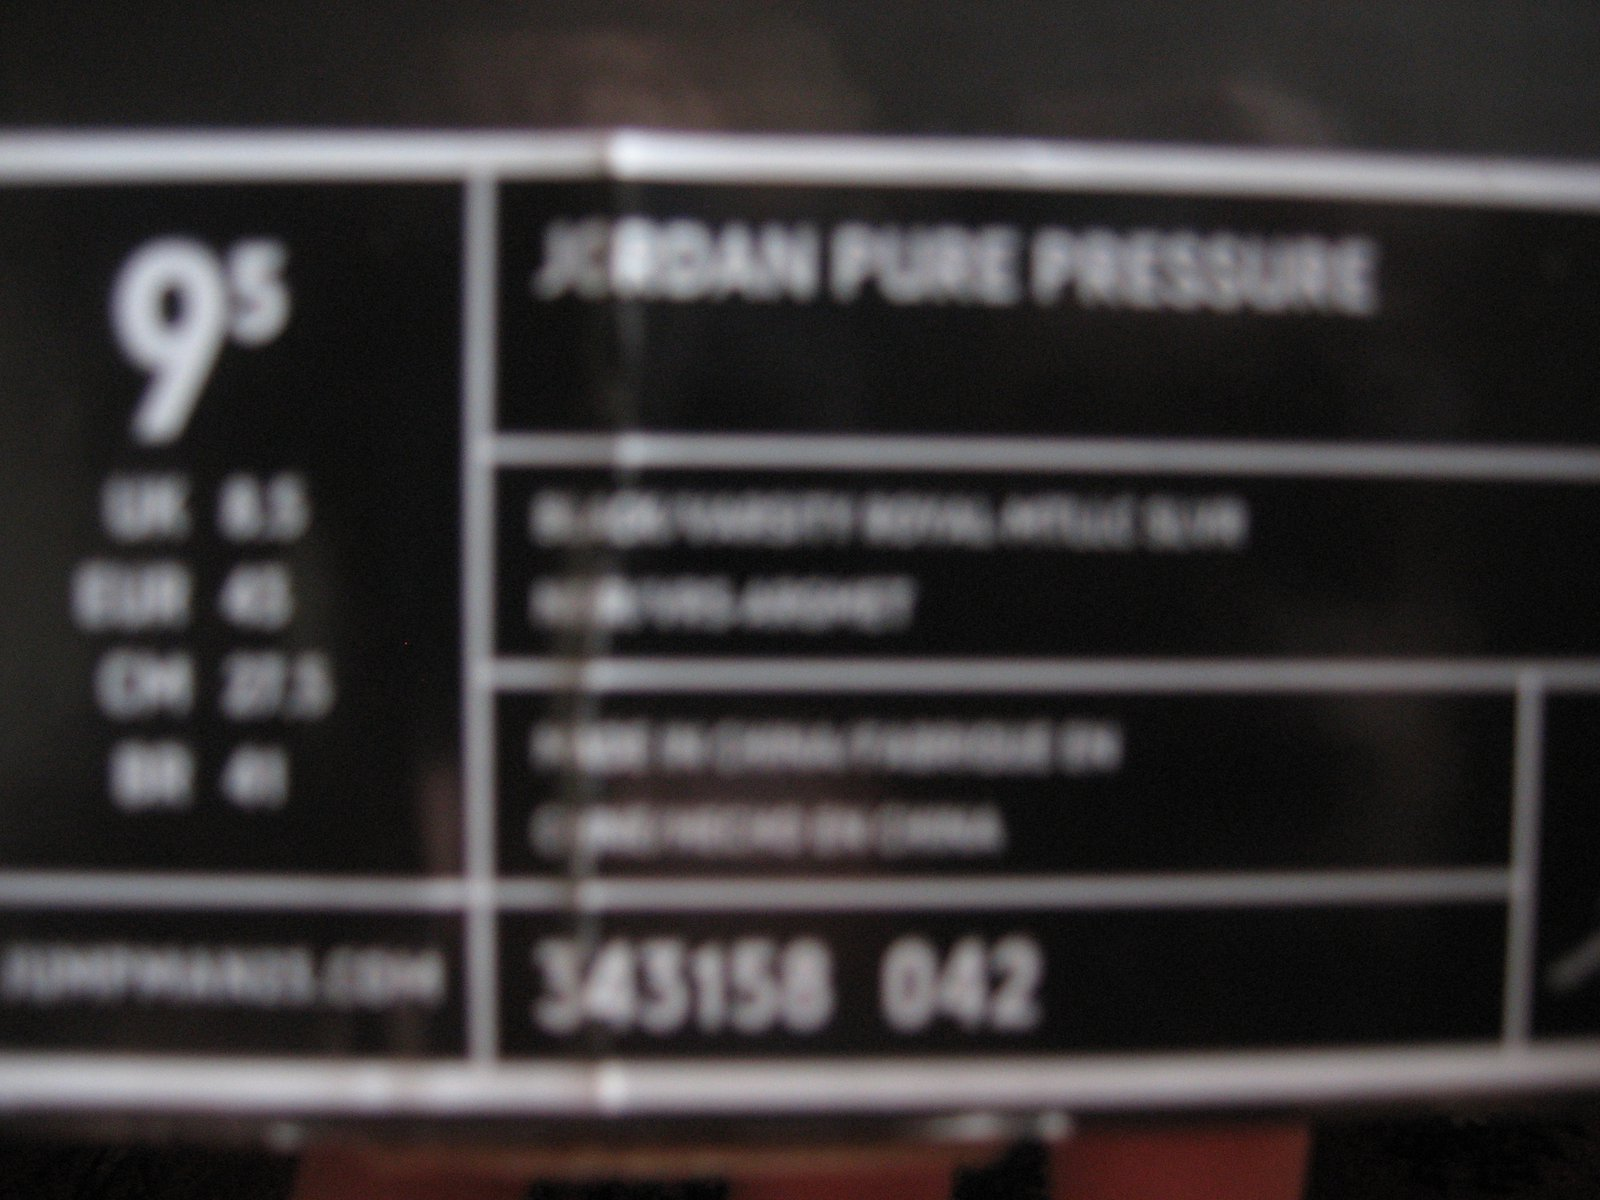 Jordan pure pressure label